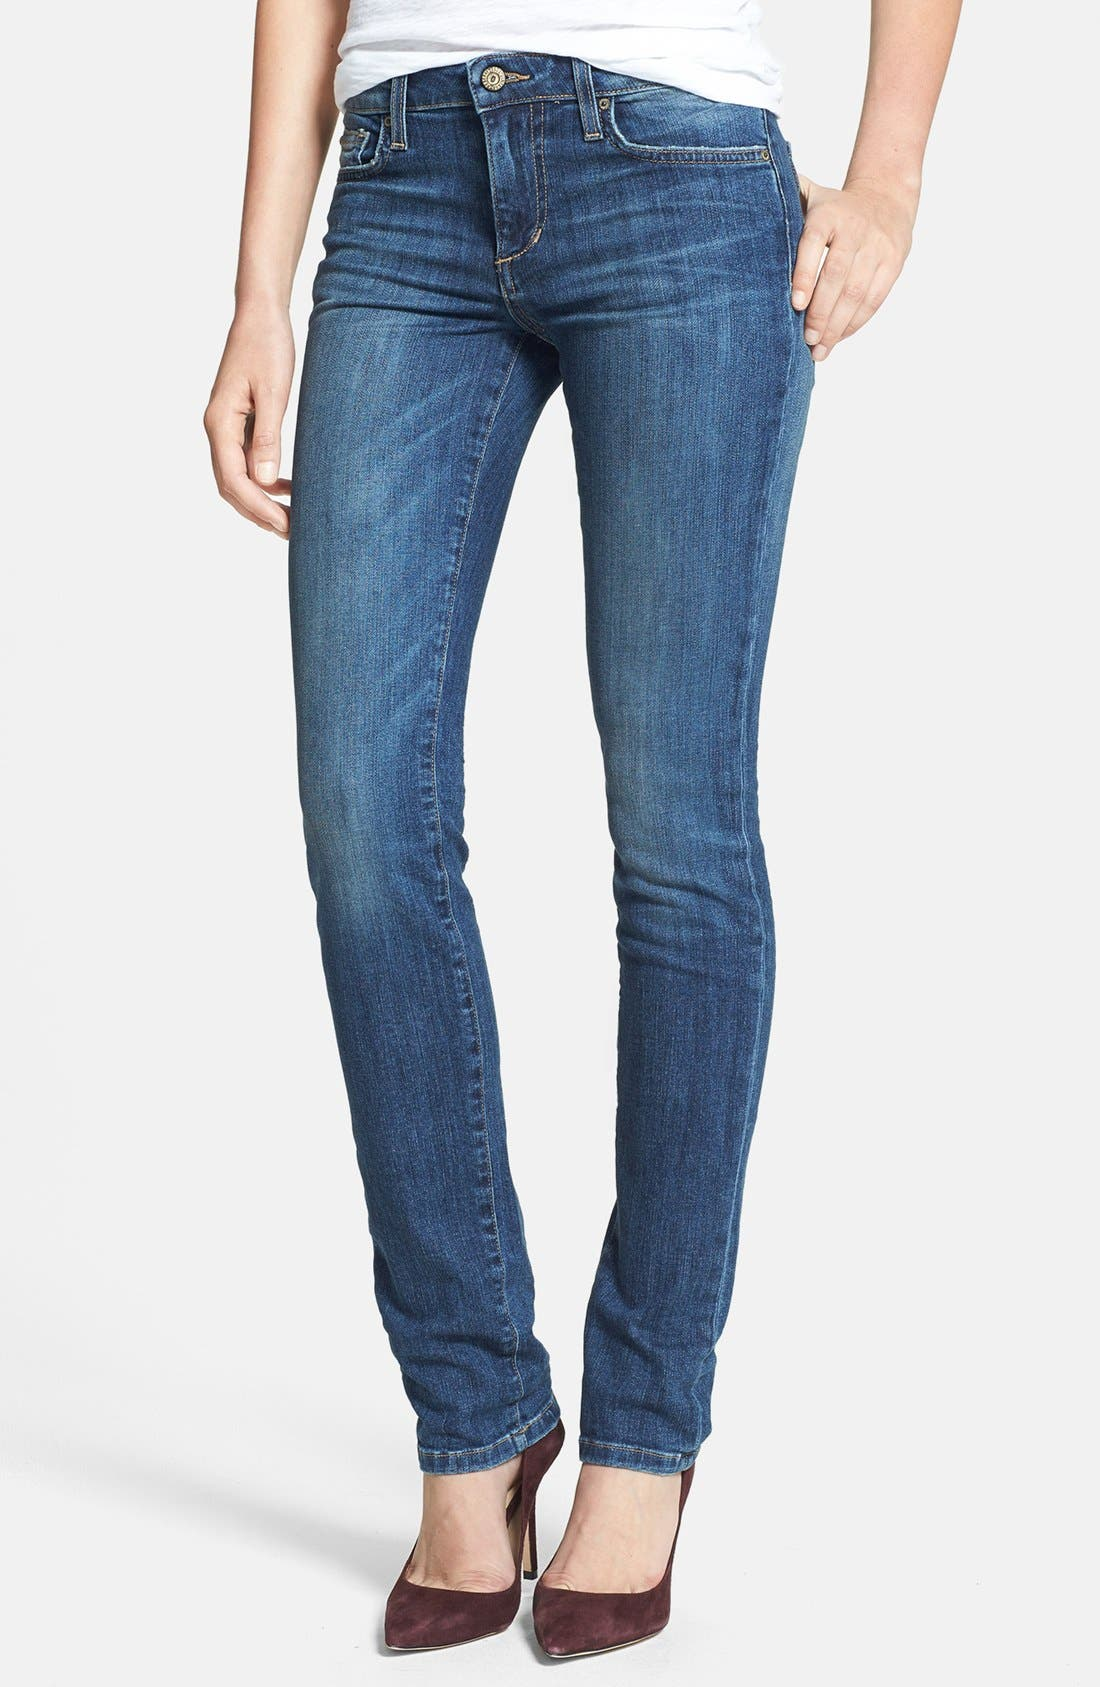 Alternate Image 1 Selected - Joe's 'The Skinny' Stretch Jeans (Laurel)